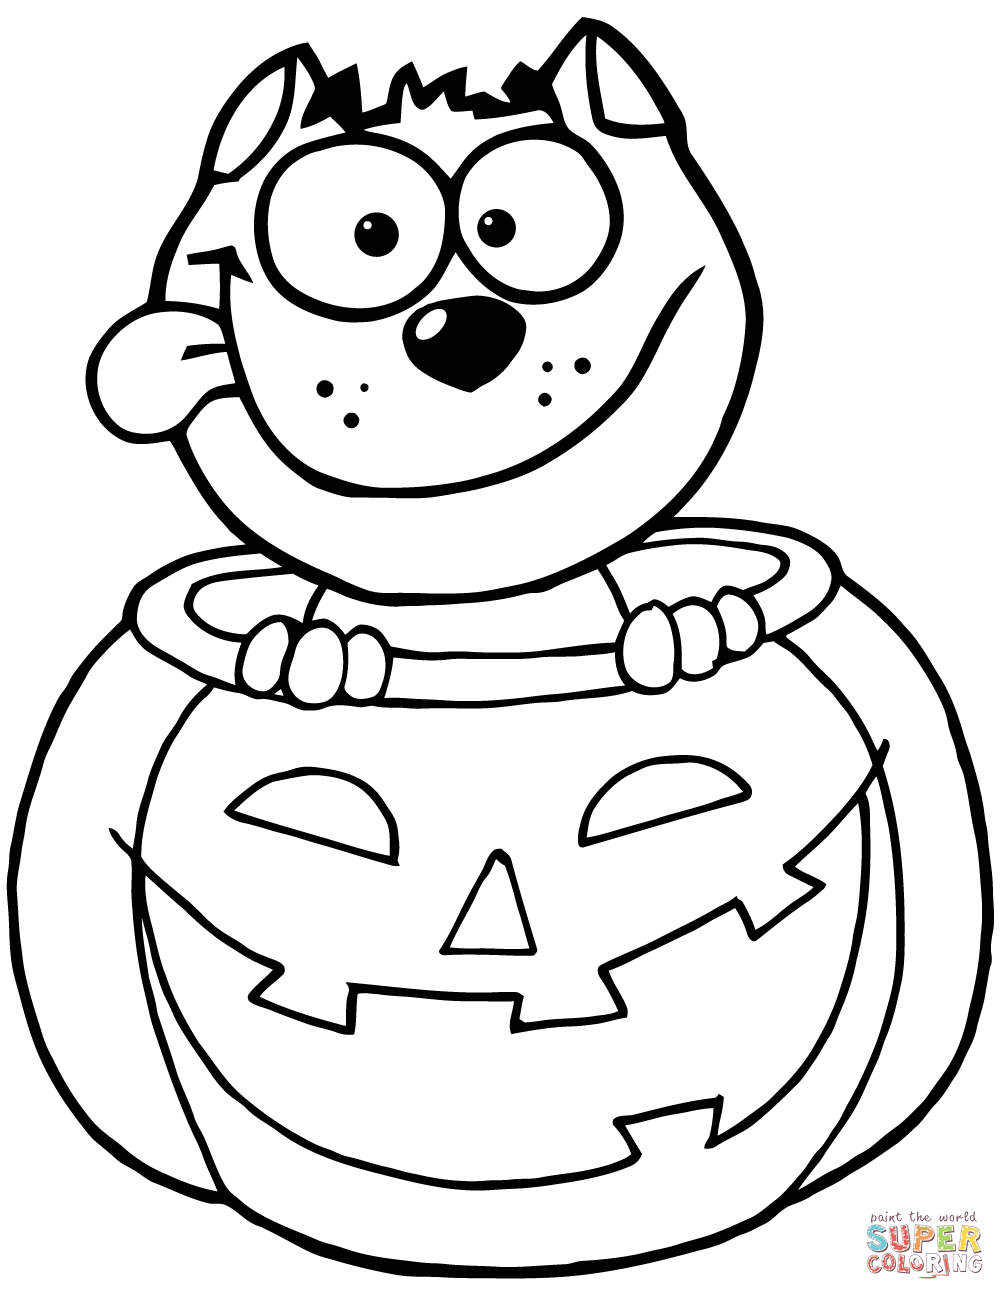 Pumpkin Patch Coloring Page | Free download best Pumpkin Patch ...